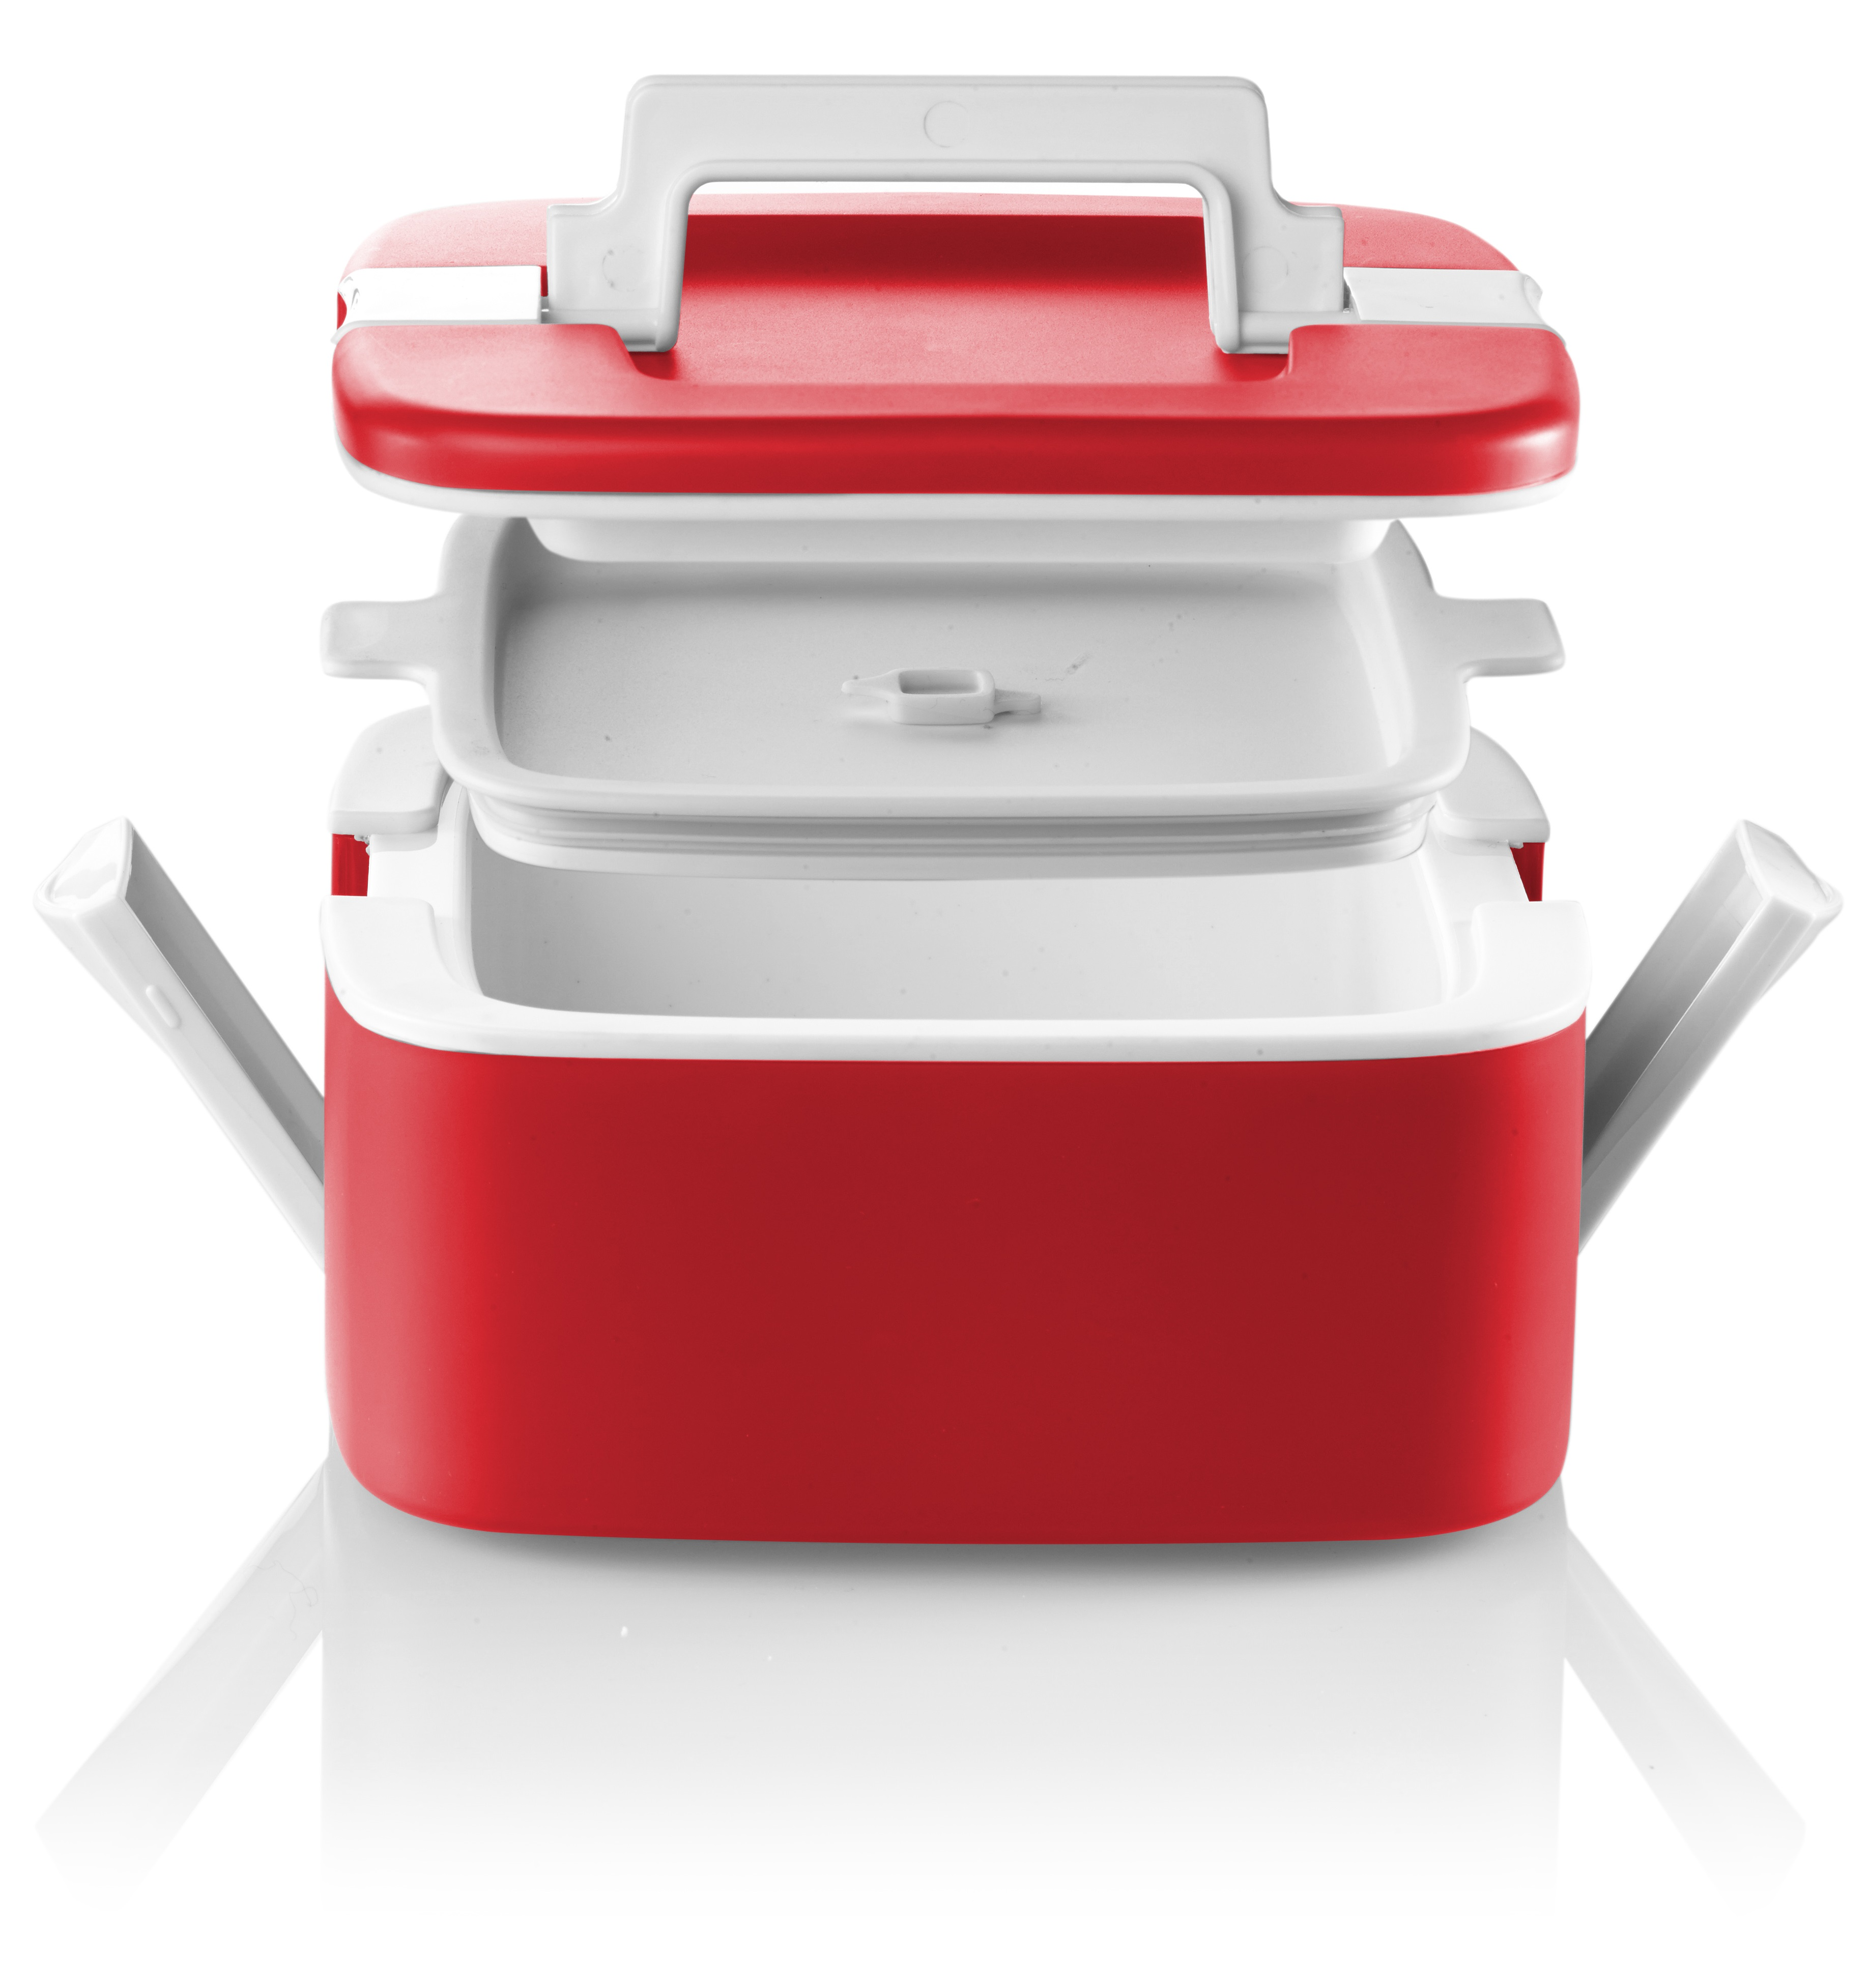 Ozeri ThermoMax Stackable Lunch Box and Double-wall Insulated Food Storage Container  sc 1 st  Kmart & Ozeri ThermoMax Stackable Lunch Box and Double-wall Insulated Food ...